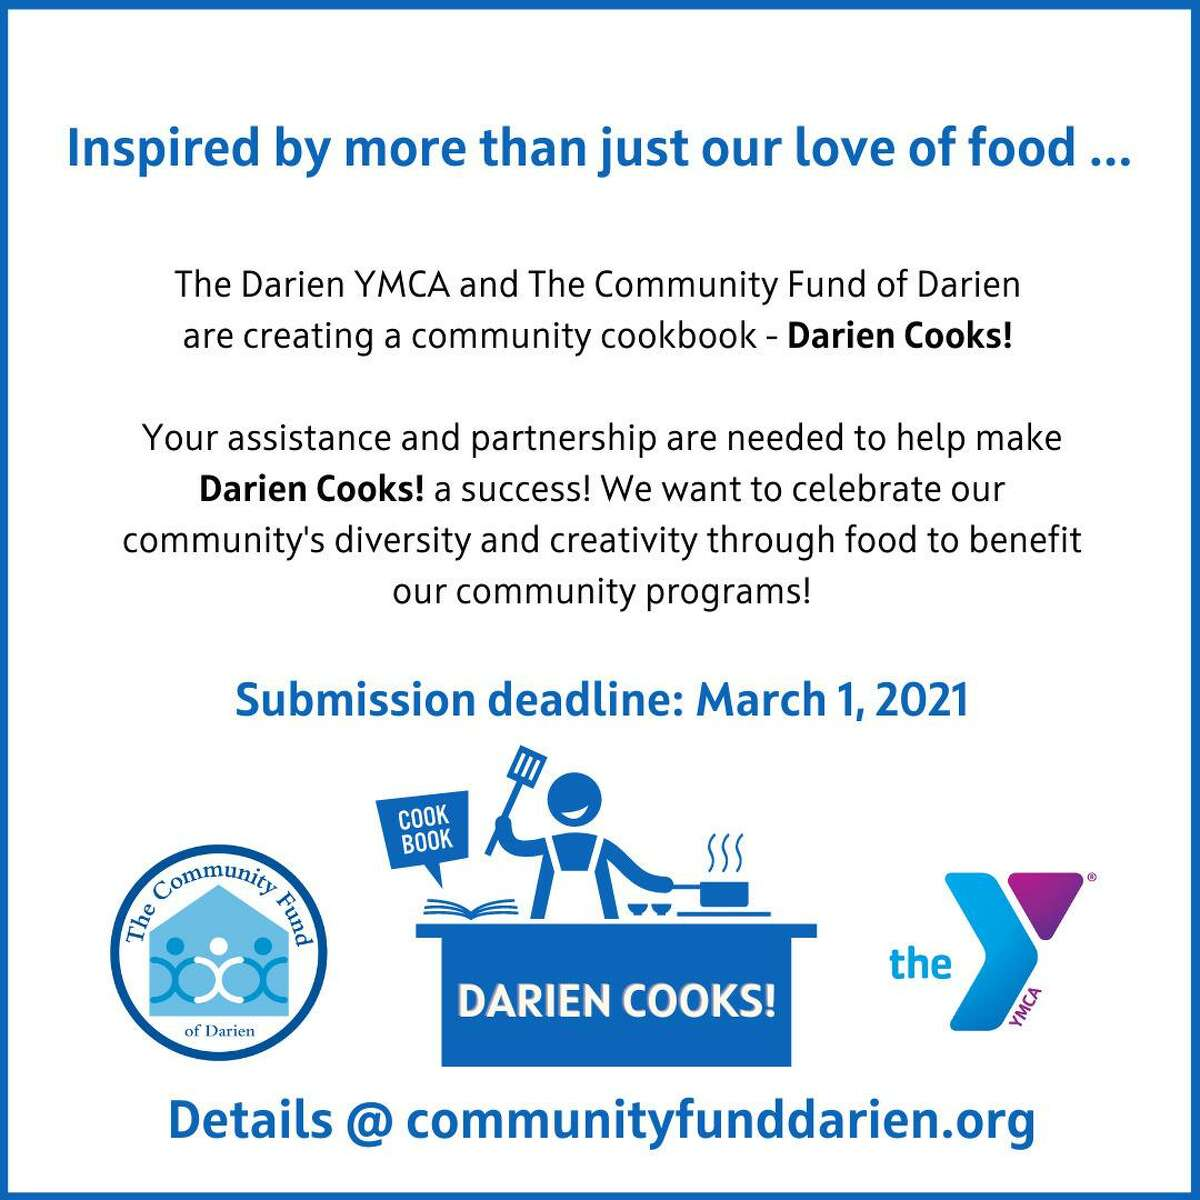 """The Community Fund of Darien and the Darien YMCA previously came together to discuss a community building project, and realized that many residents were spending a great deal of time at home with family, doing a lot of cooking, and having meals together. This was the inspiration for the """"Darien Cooks! Community Cookbook,"""" a treasury of recipes to feed the soul, local families and our community. Pictured is the flyer for the project."""